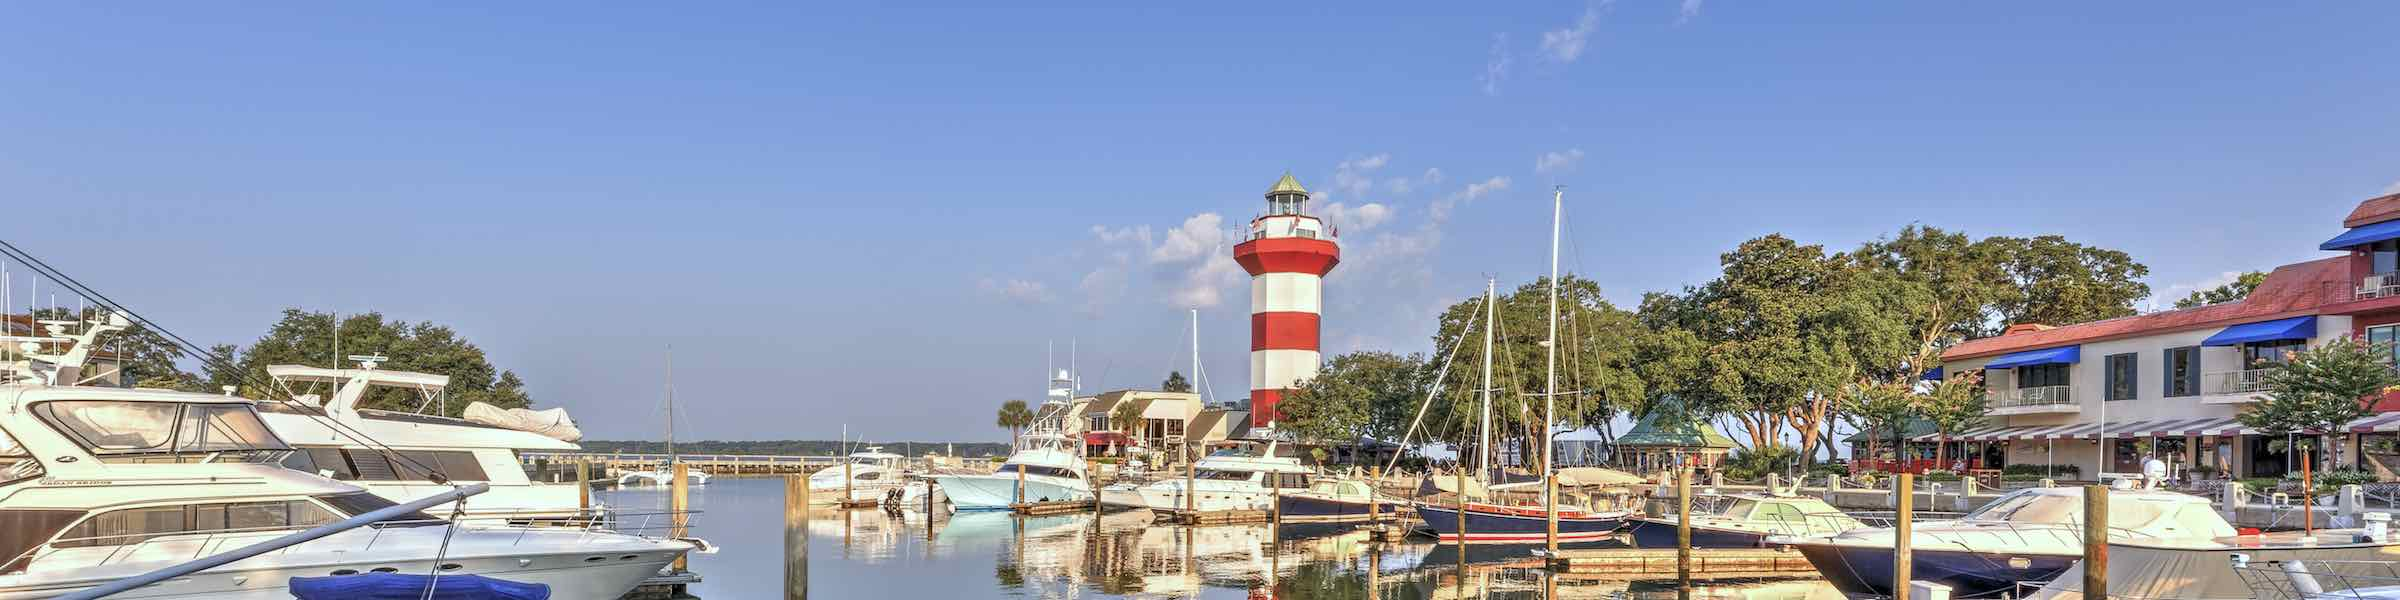 Harbour Town Lighthouse and marina at Hilton Head Island, SC.